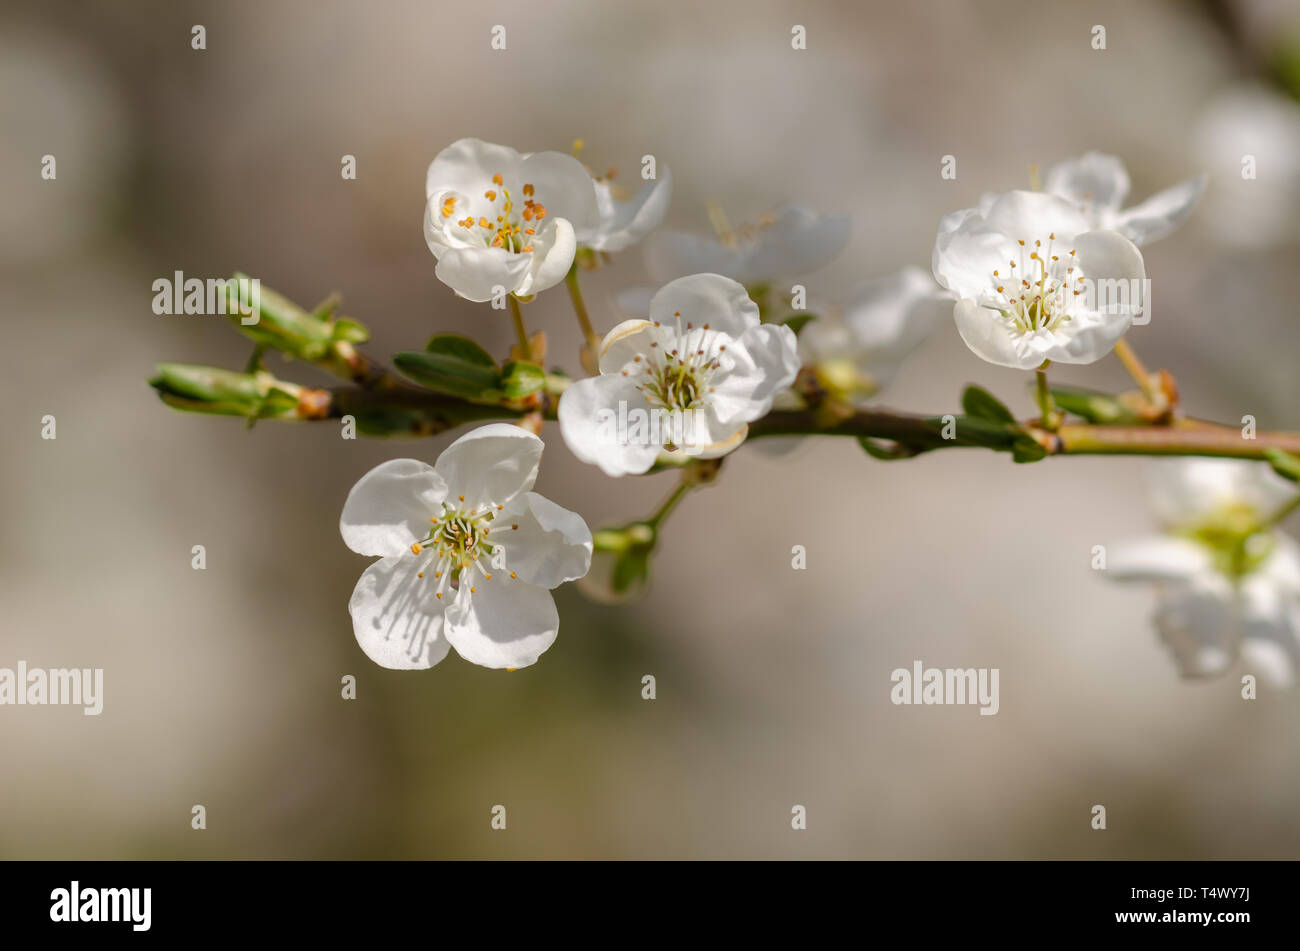 Fruit tree blossom close-up. Shallow depth of field - Stock Image